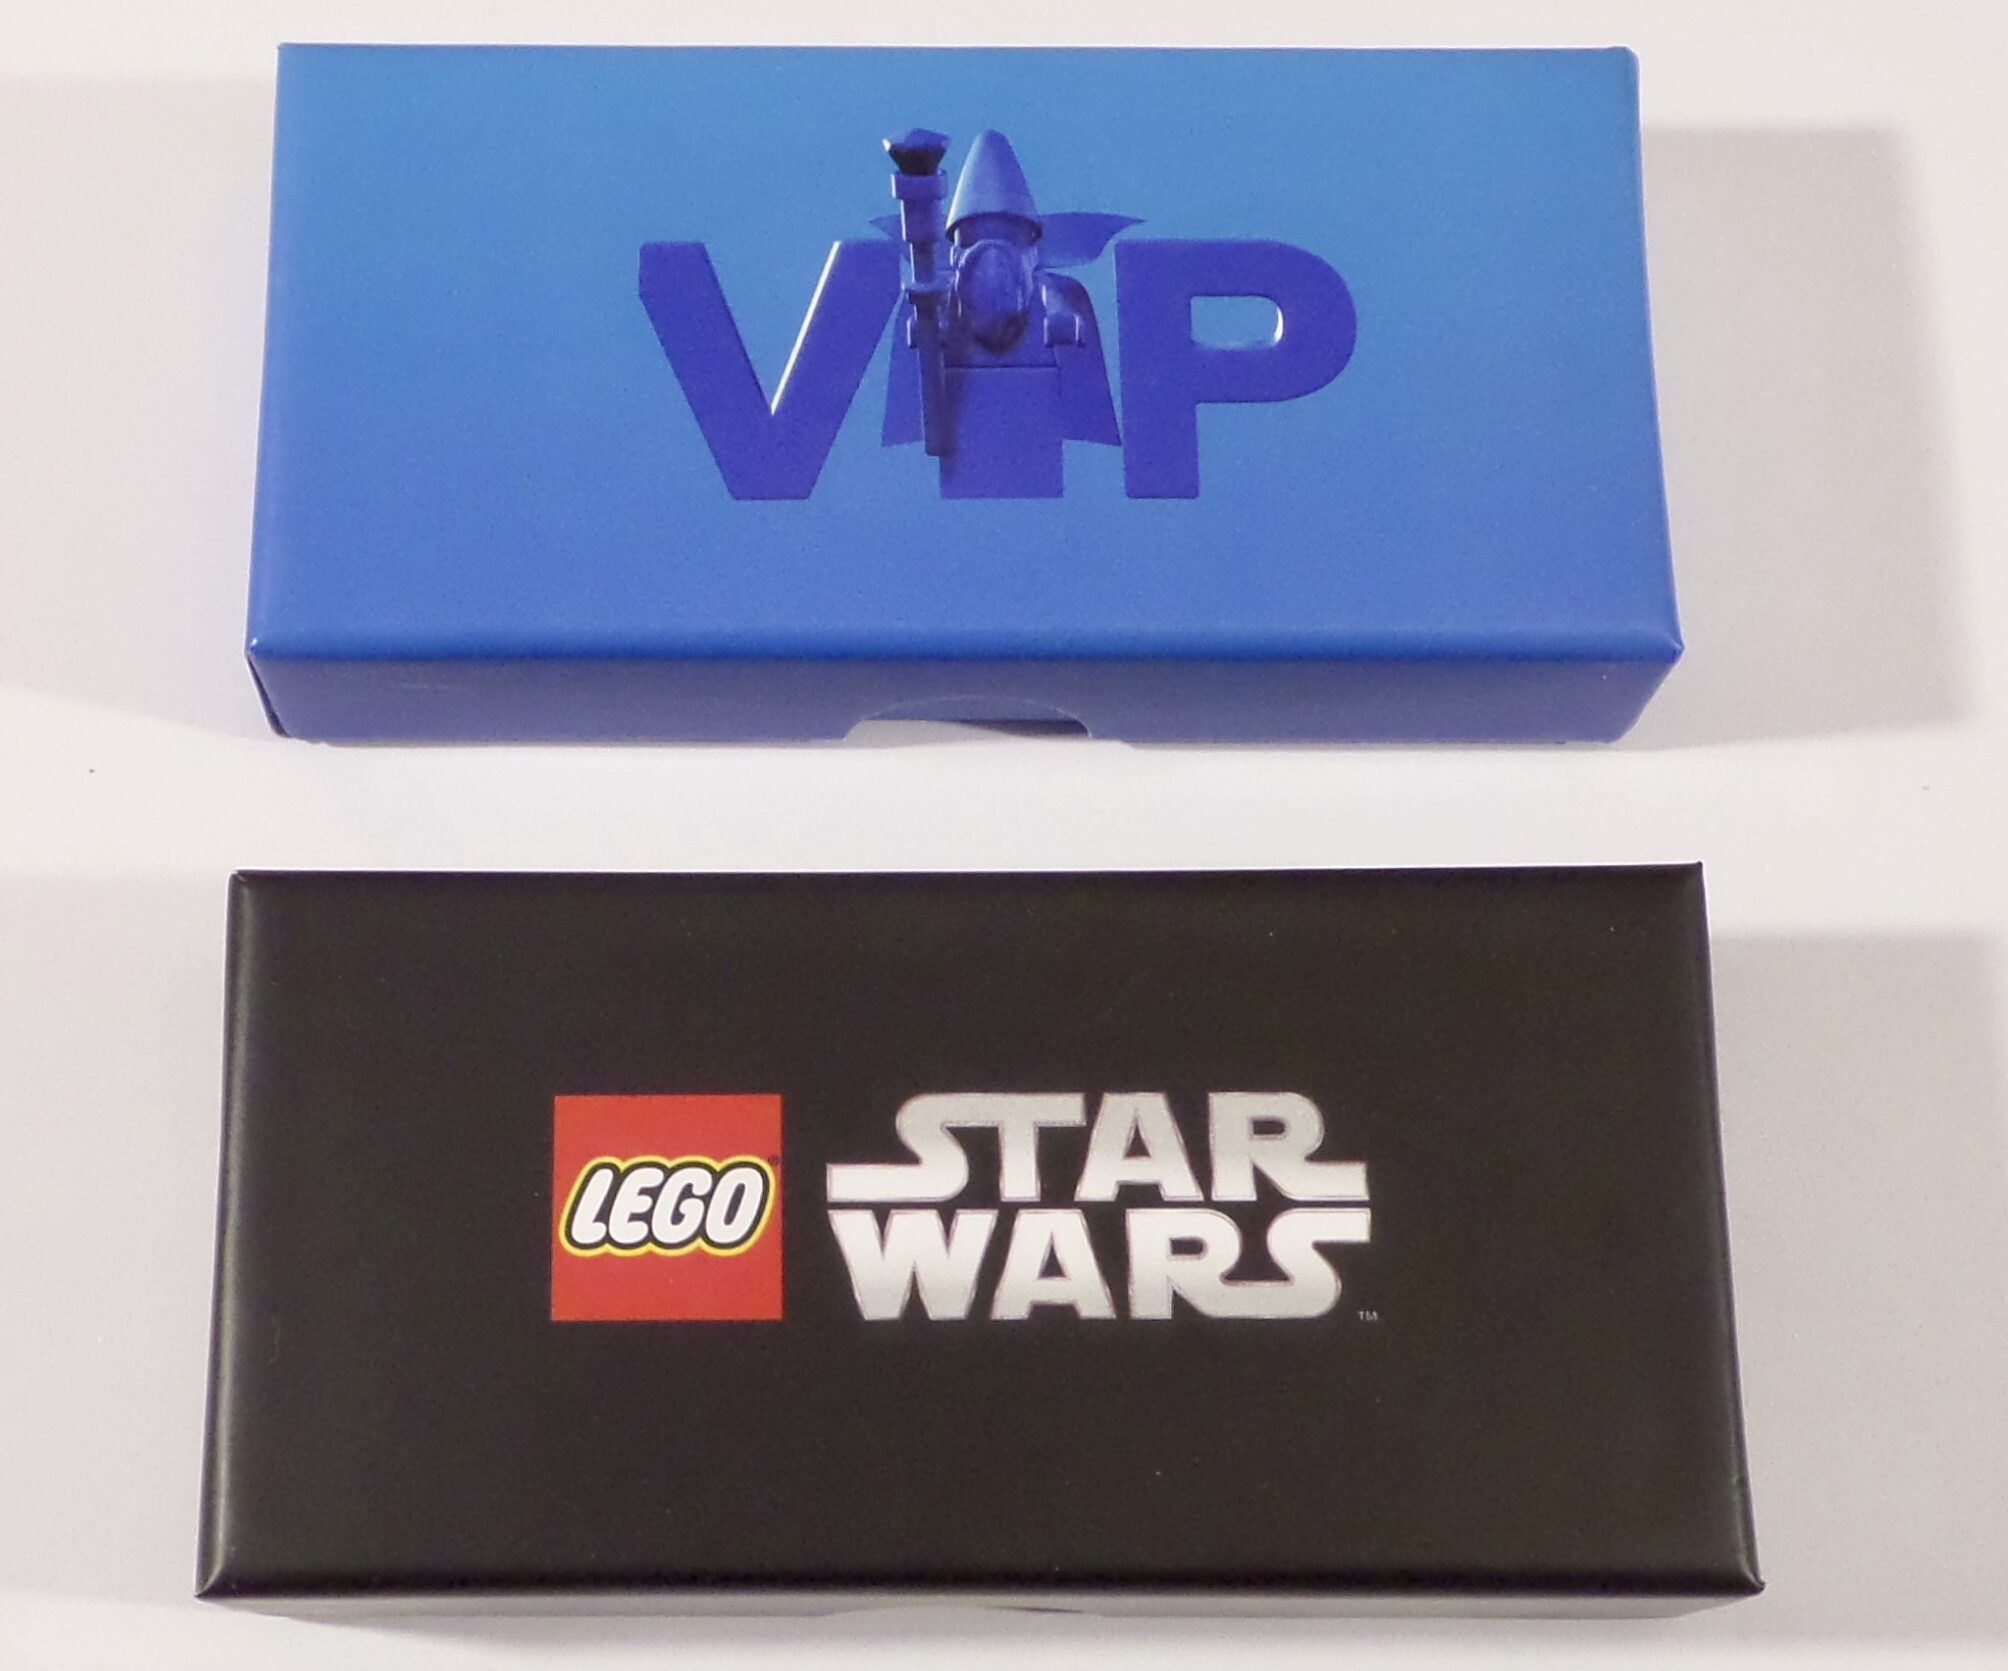 LEGO 5006330 VIP Metal Key Chain